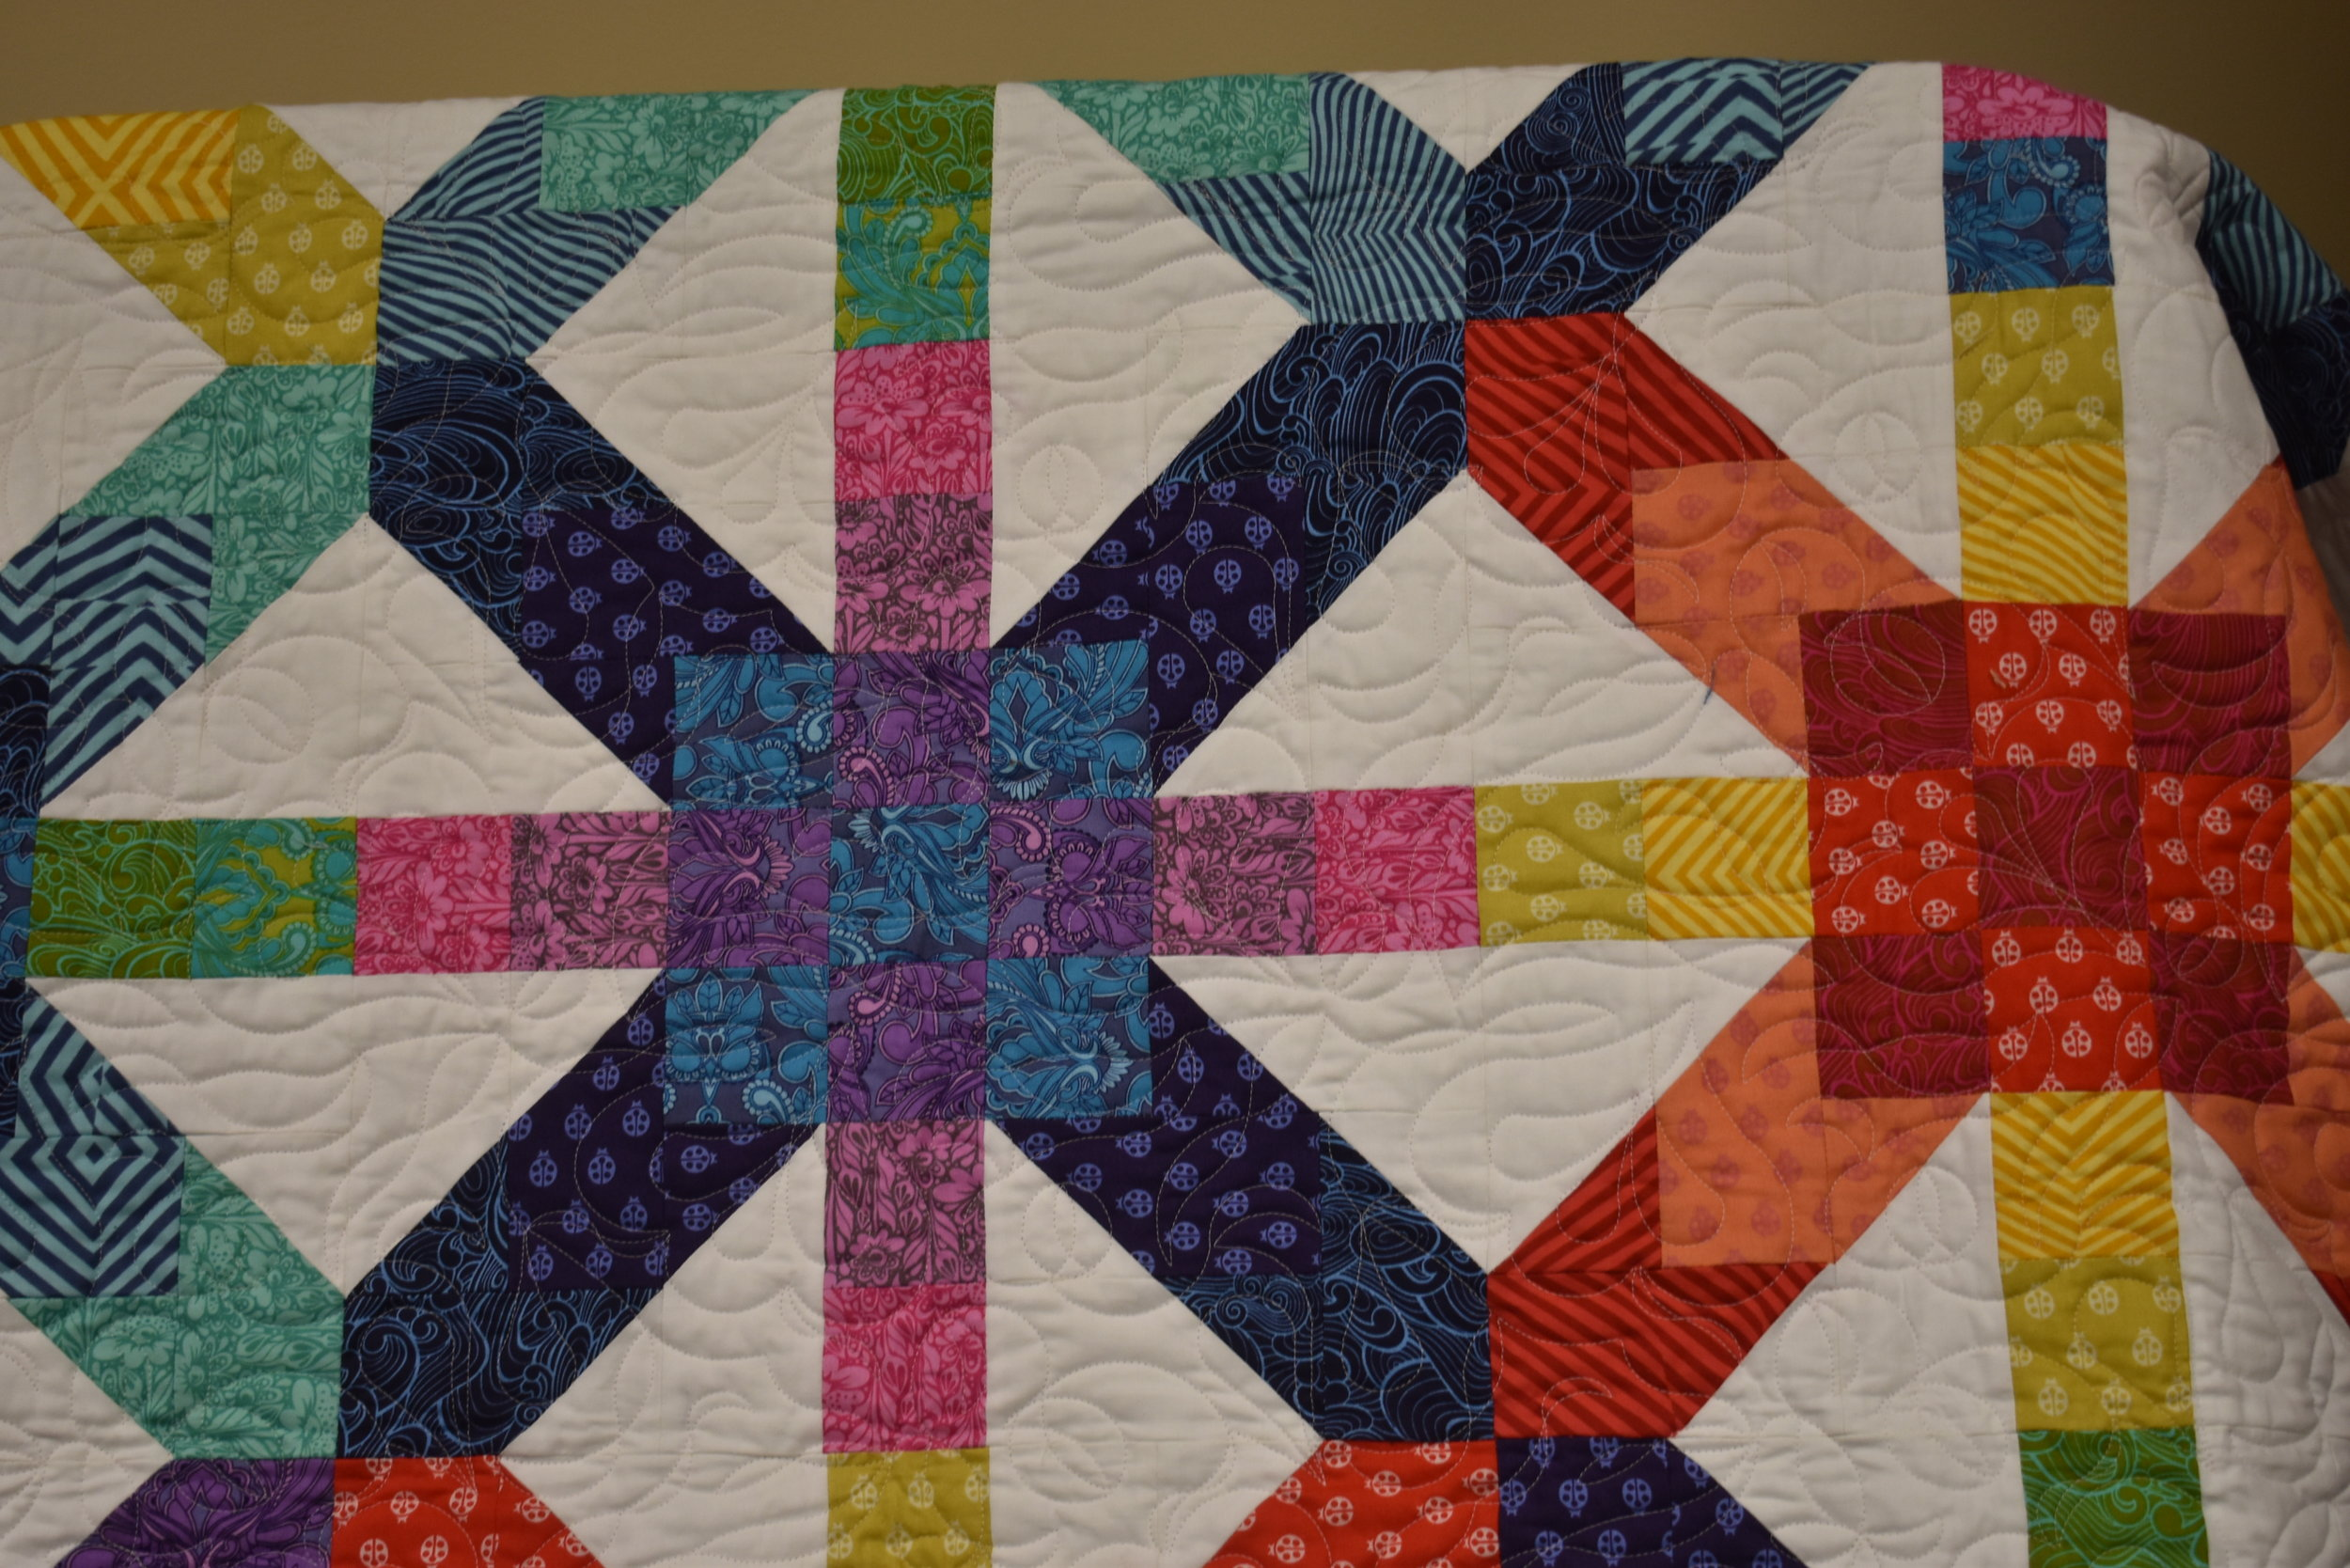 Quilt by Marilyn Rose - Supernova designed by Freshly Pieced